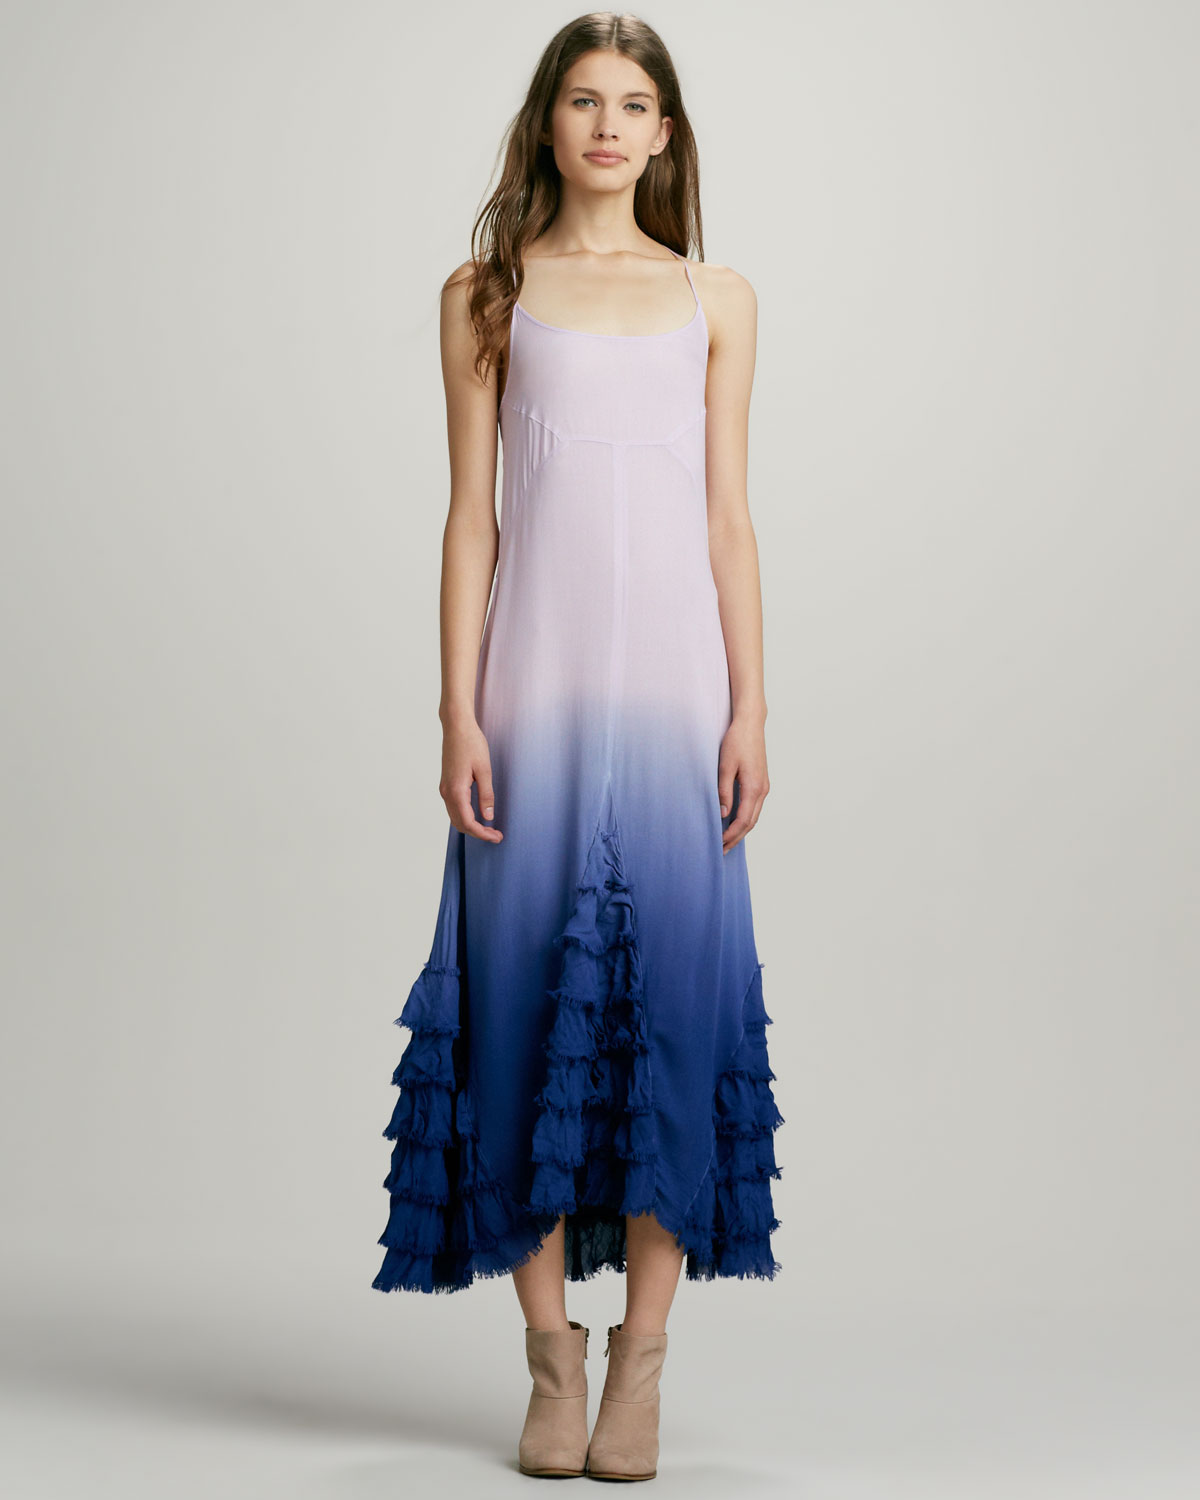 Free people Hazy Days Ruffled Ombre Maxi Dress in Blue | Lyst